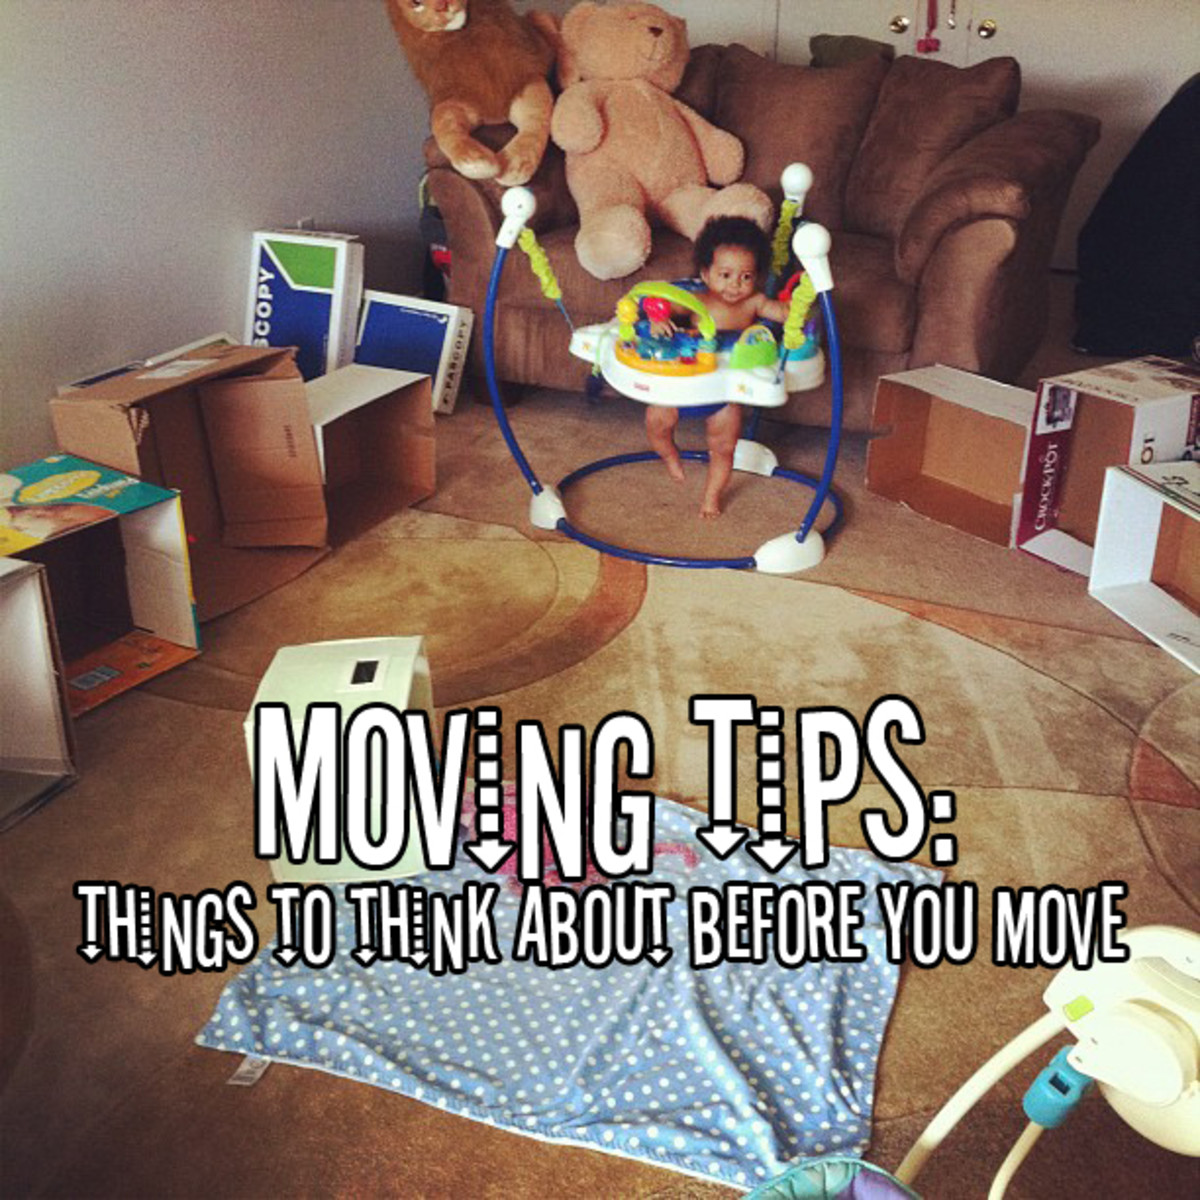 Things to consider before you move.